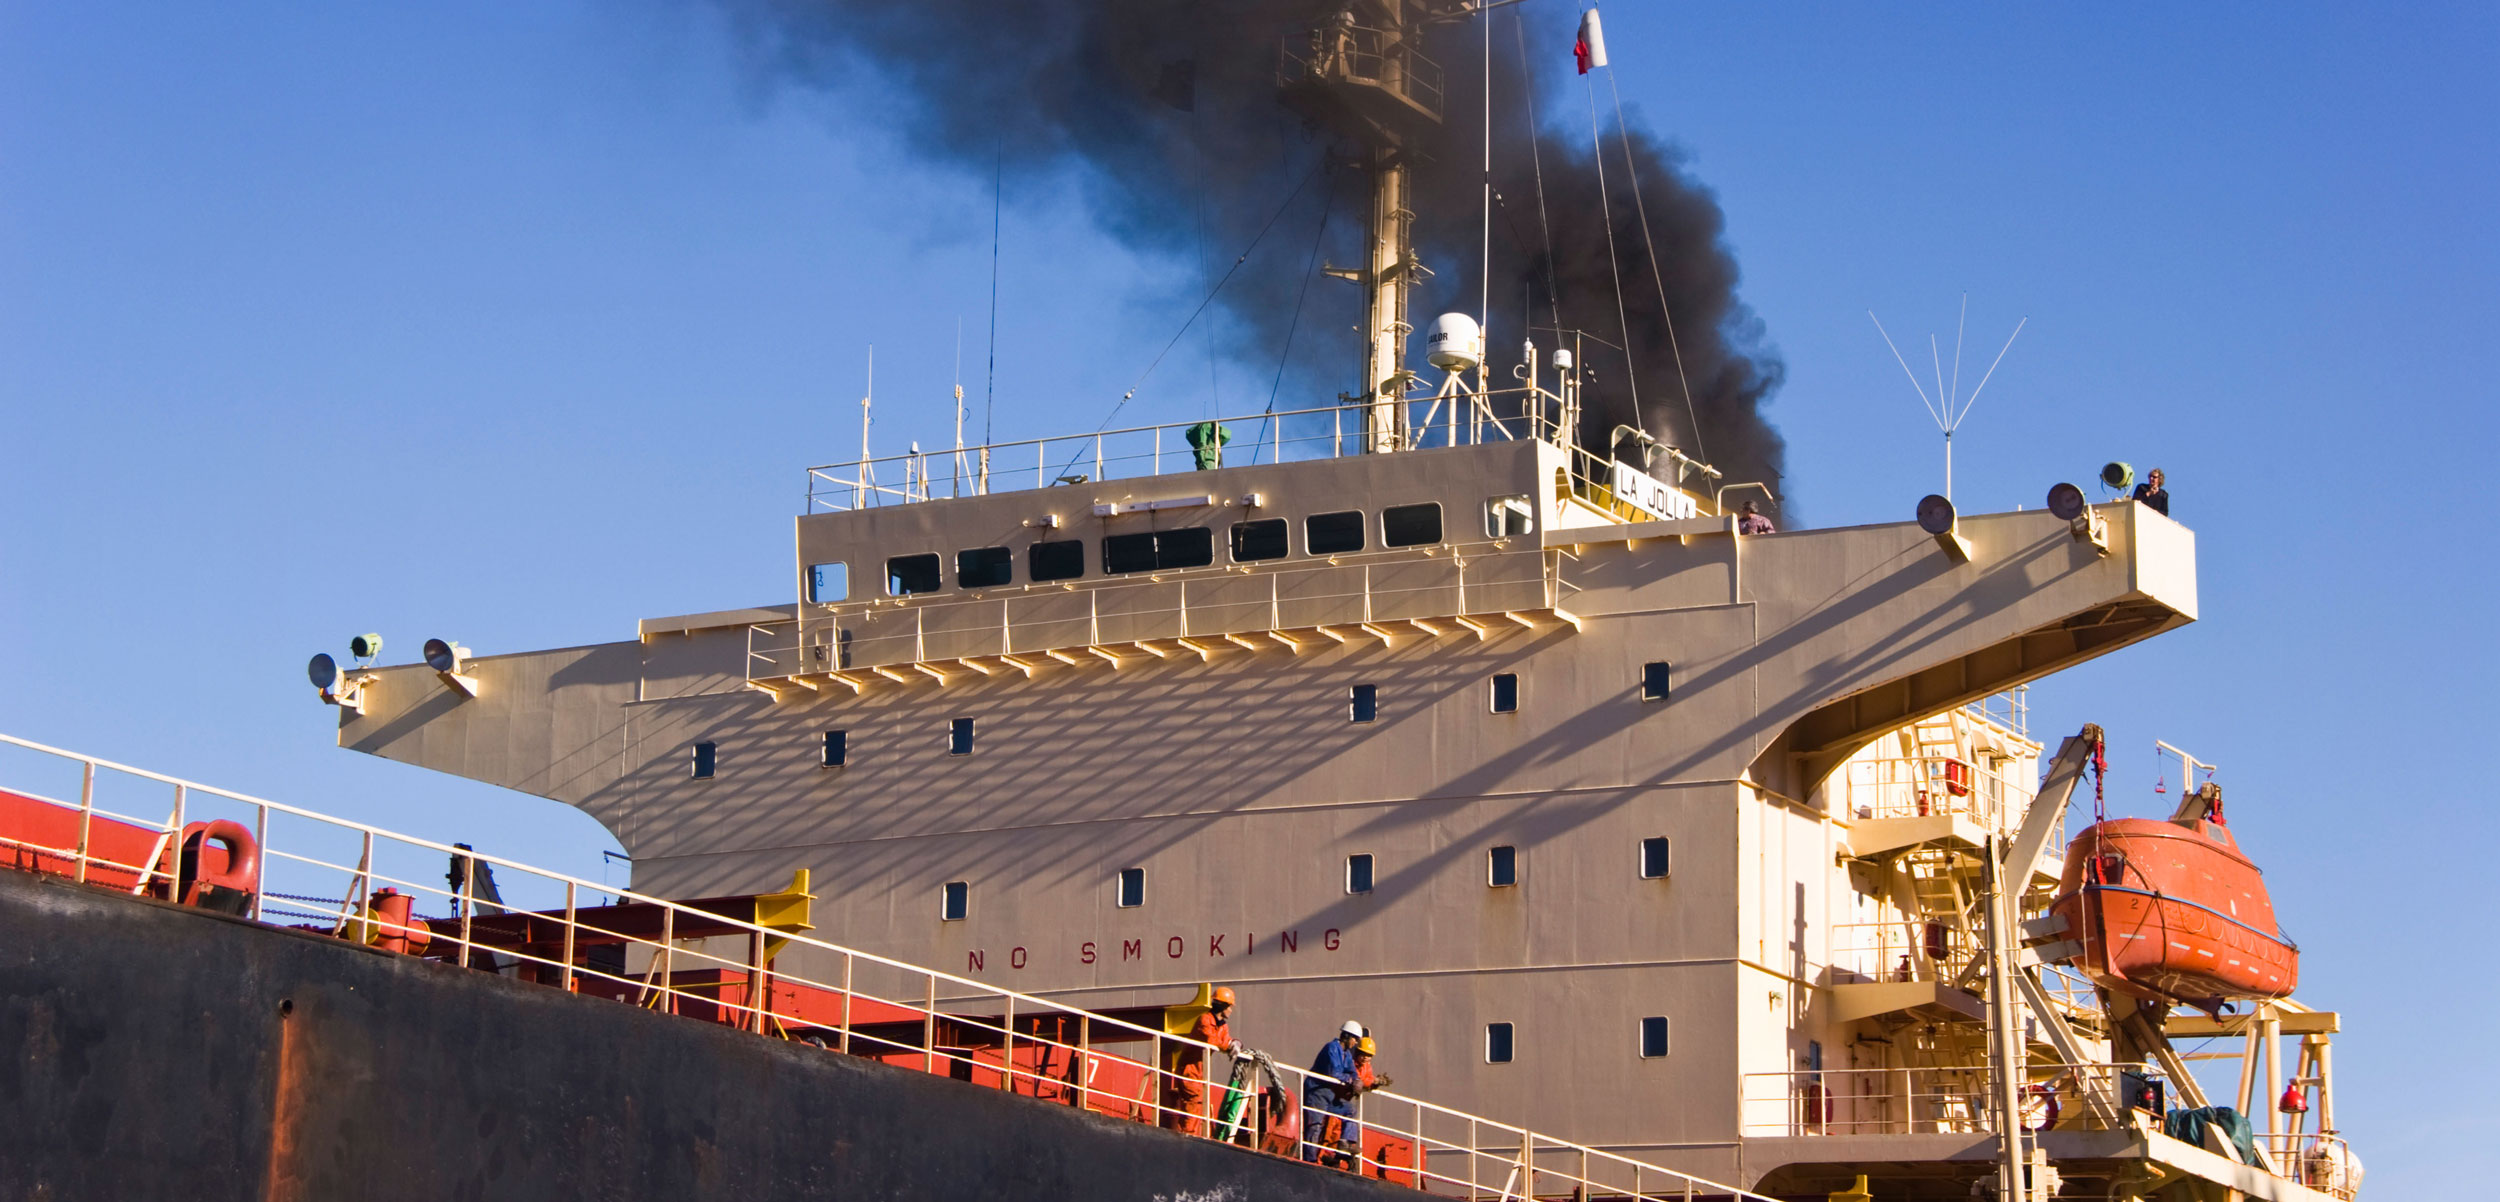 Black smoke rises from ship's funnel as the ship approaches the quay.